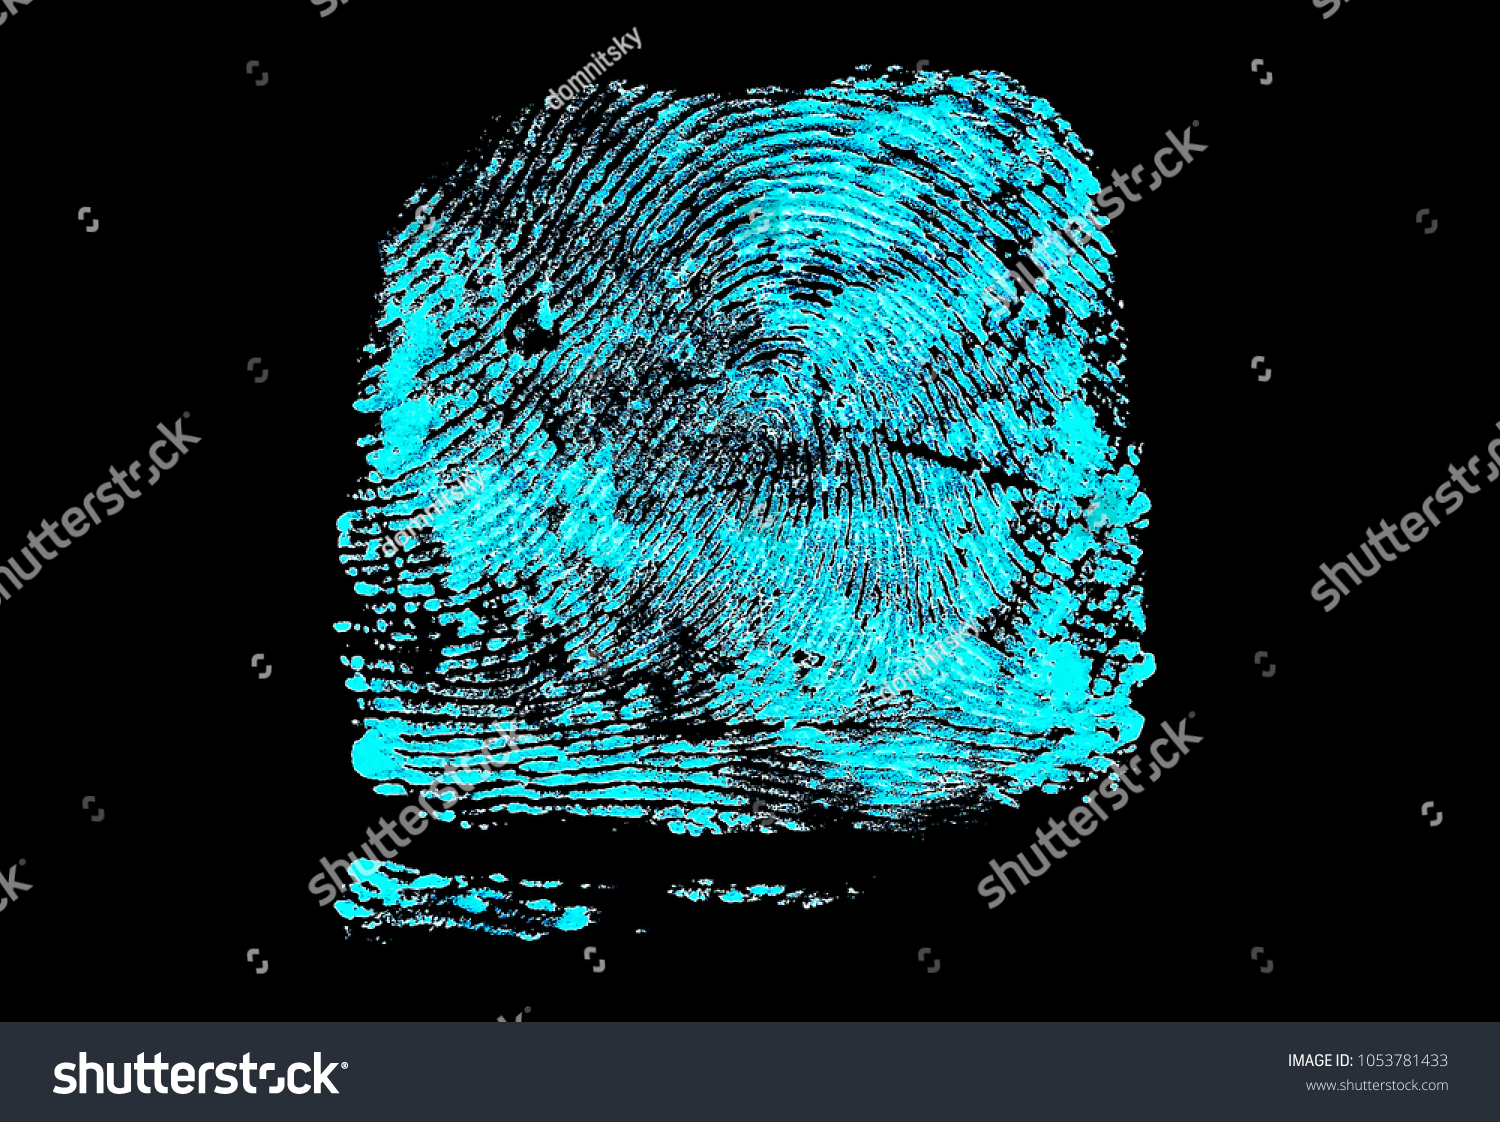 Ultraviolet Lamp Fingerprint On Black Background Fingerprint Ultraviolet Stock